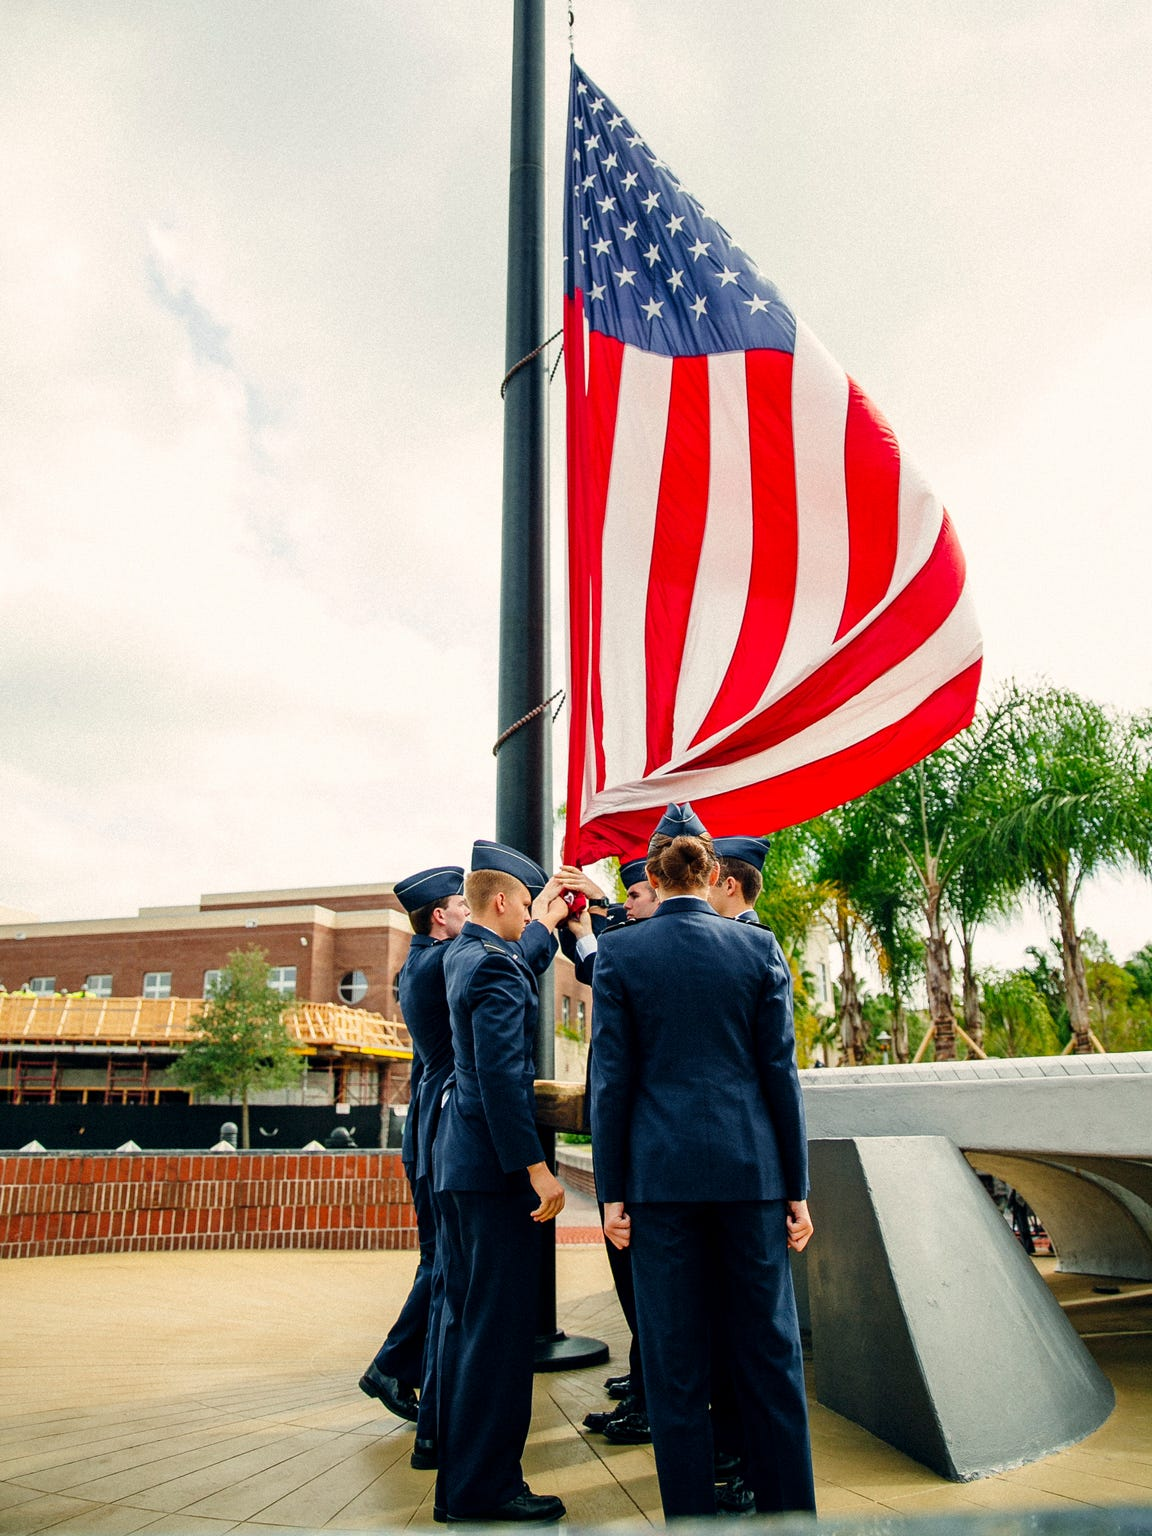 Members of UCF's ROTC raise the flag on campus.